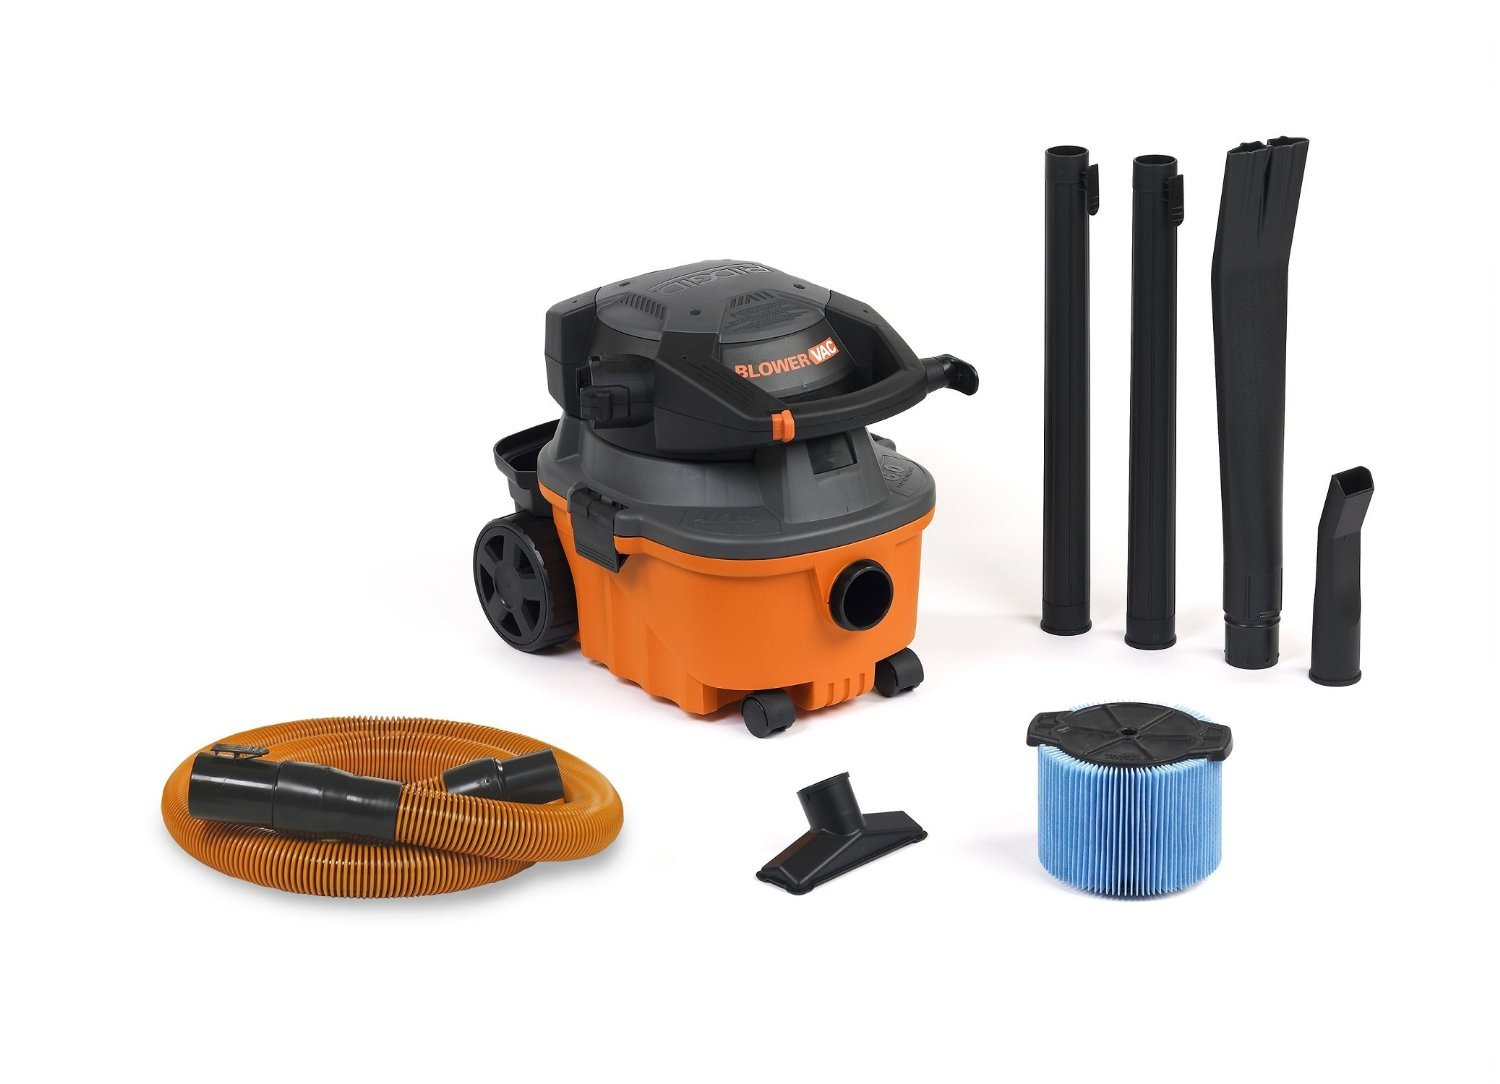 RIDGID Wet Dry Vacuums VAC4010 2-in-1 Compact and Portable Wet Dry Vacuum Cleaner with Detachable Blower, 4-Gallon, 6.0 Peak HP Leaf Blower Vacuum Cleaner by Ridgid